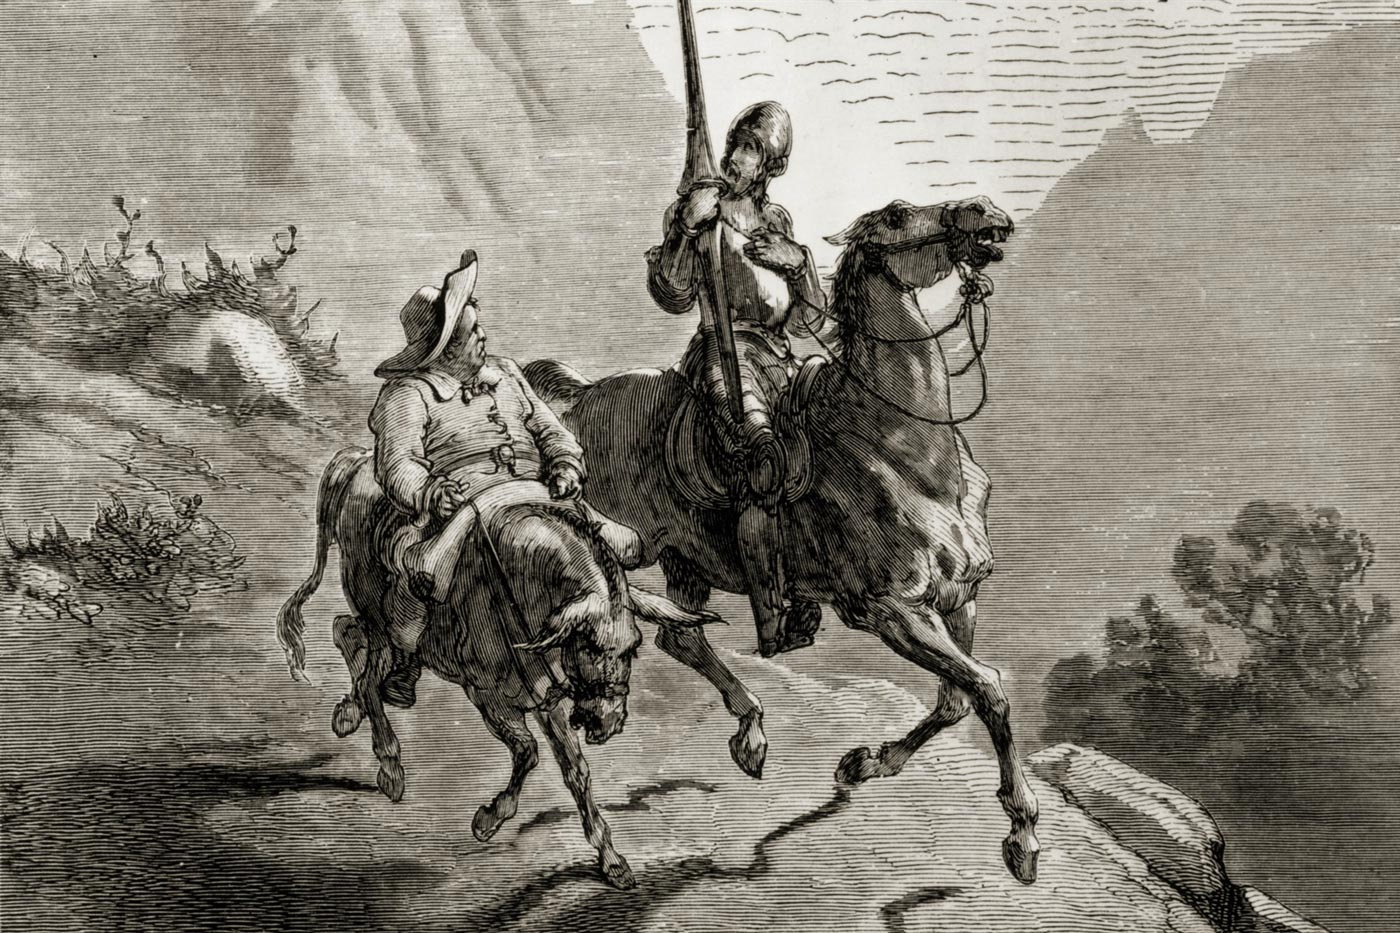 Travel Books to inspire you: Don Quixote by Miguel Cervantes © Travelwithmk.com